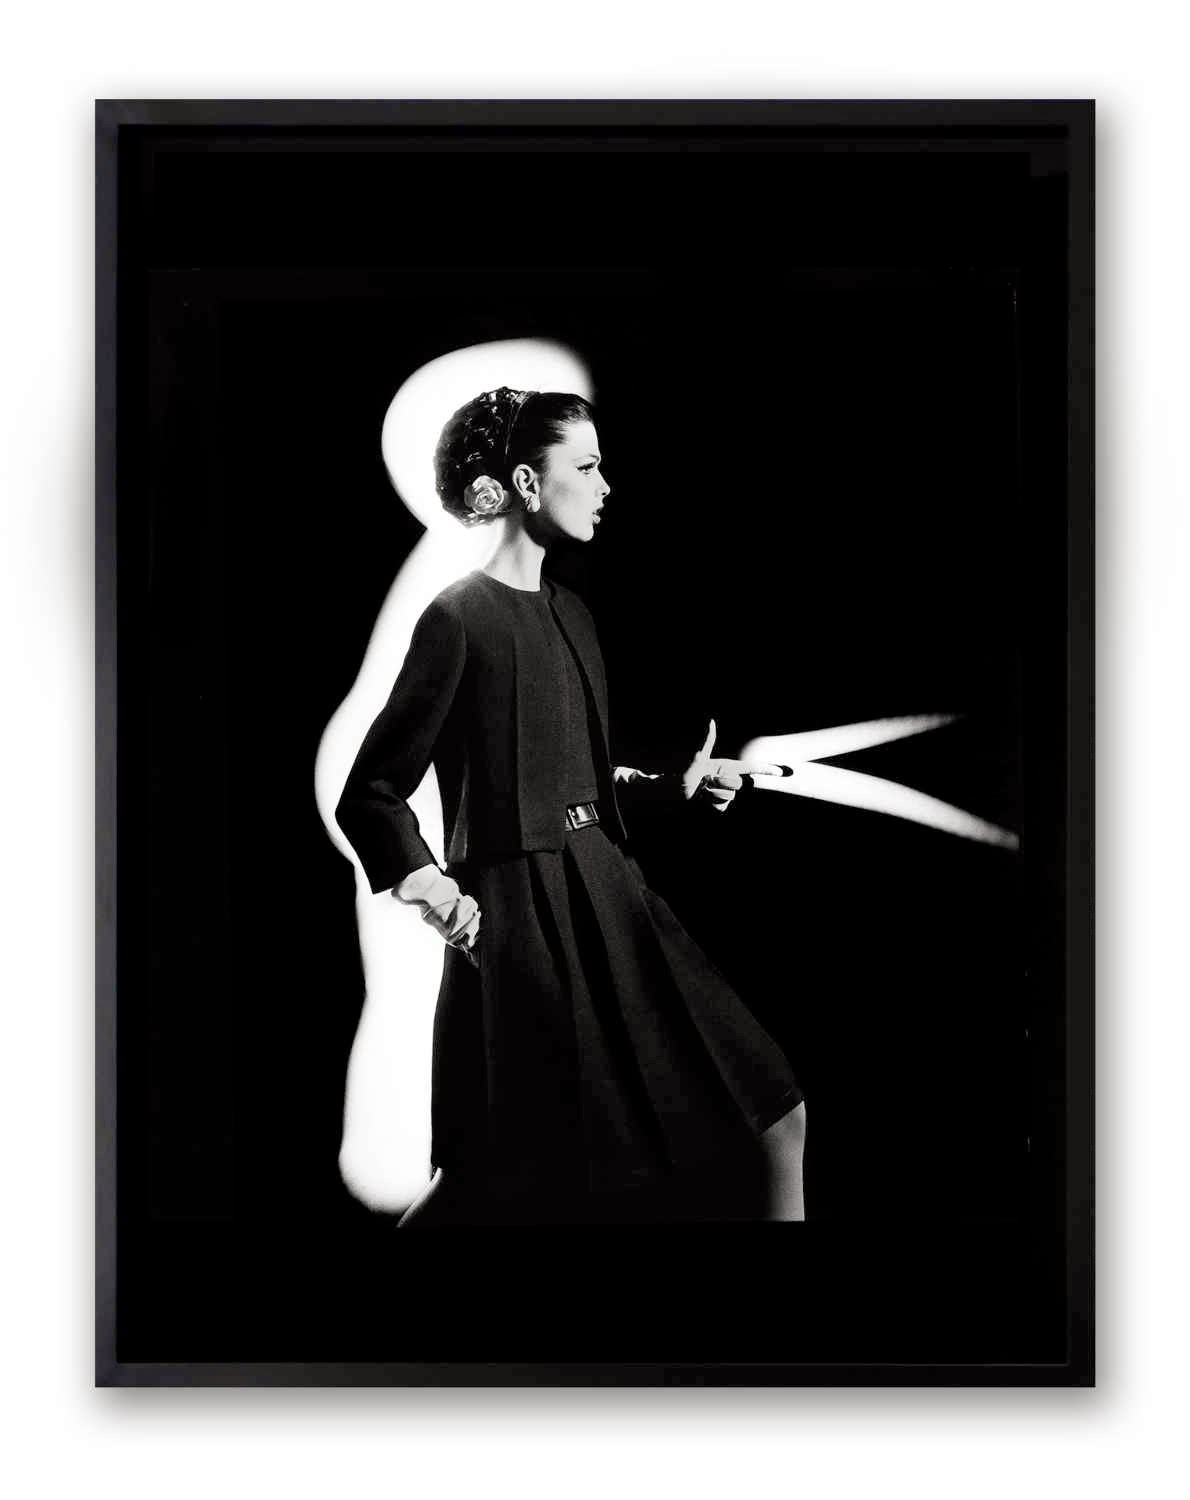 William Klein, Dorothy shooting light from hip, Paris, 1962